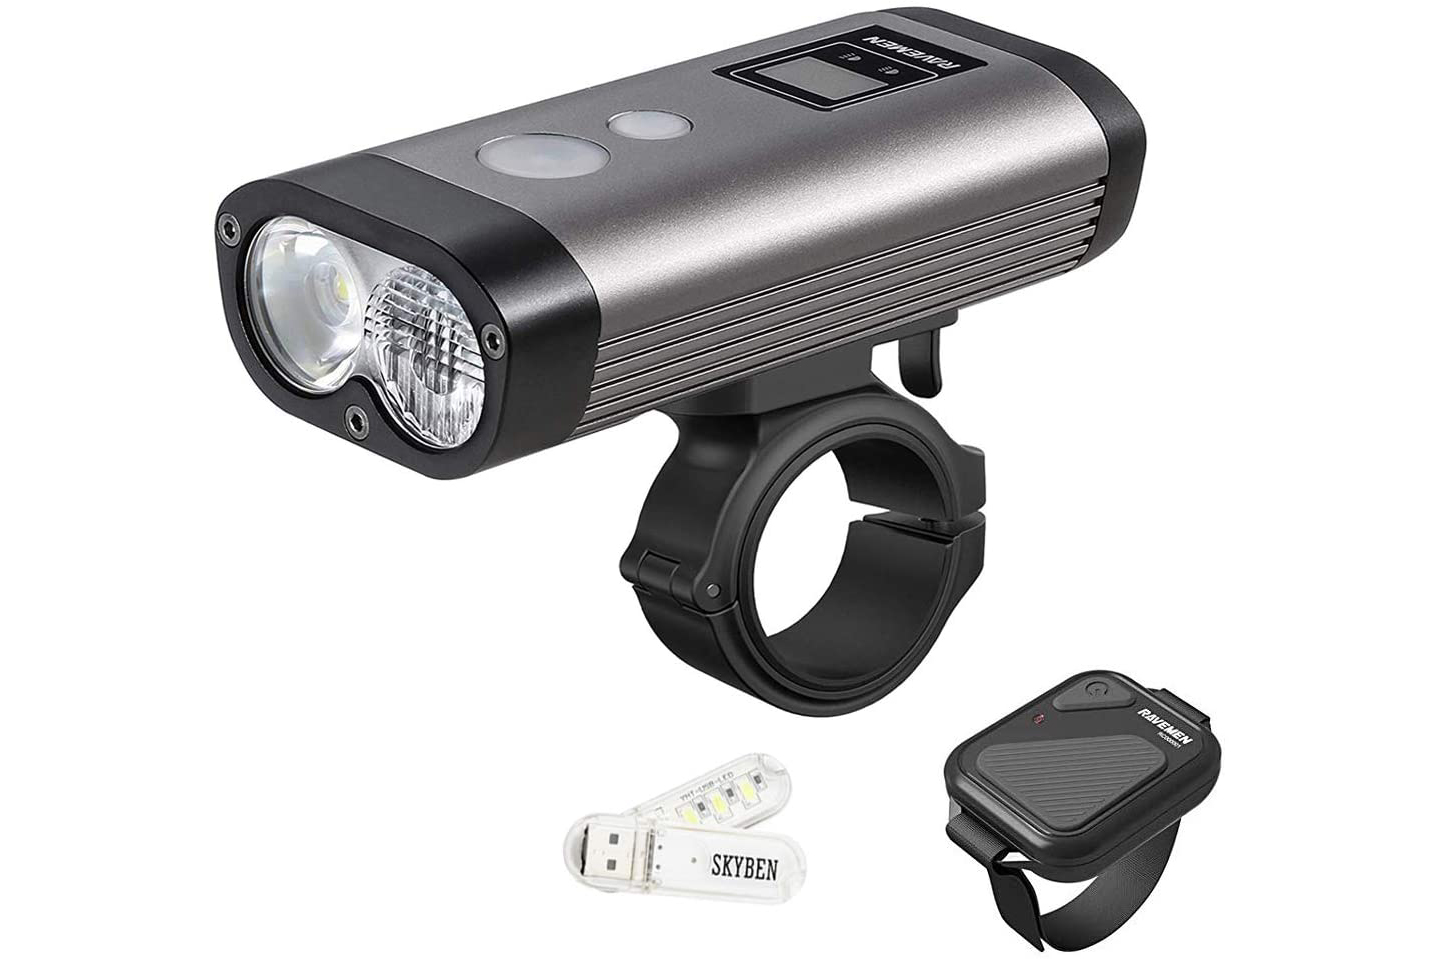 RAVEMEN PR 1600 bike light